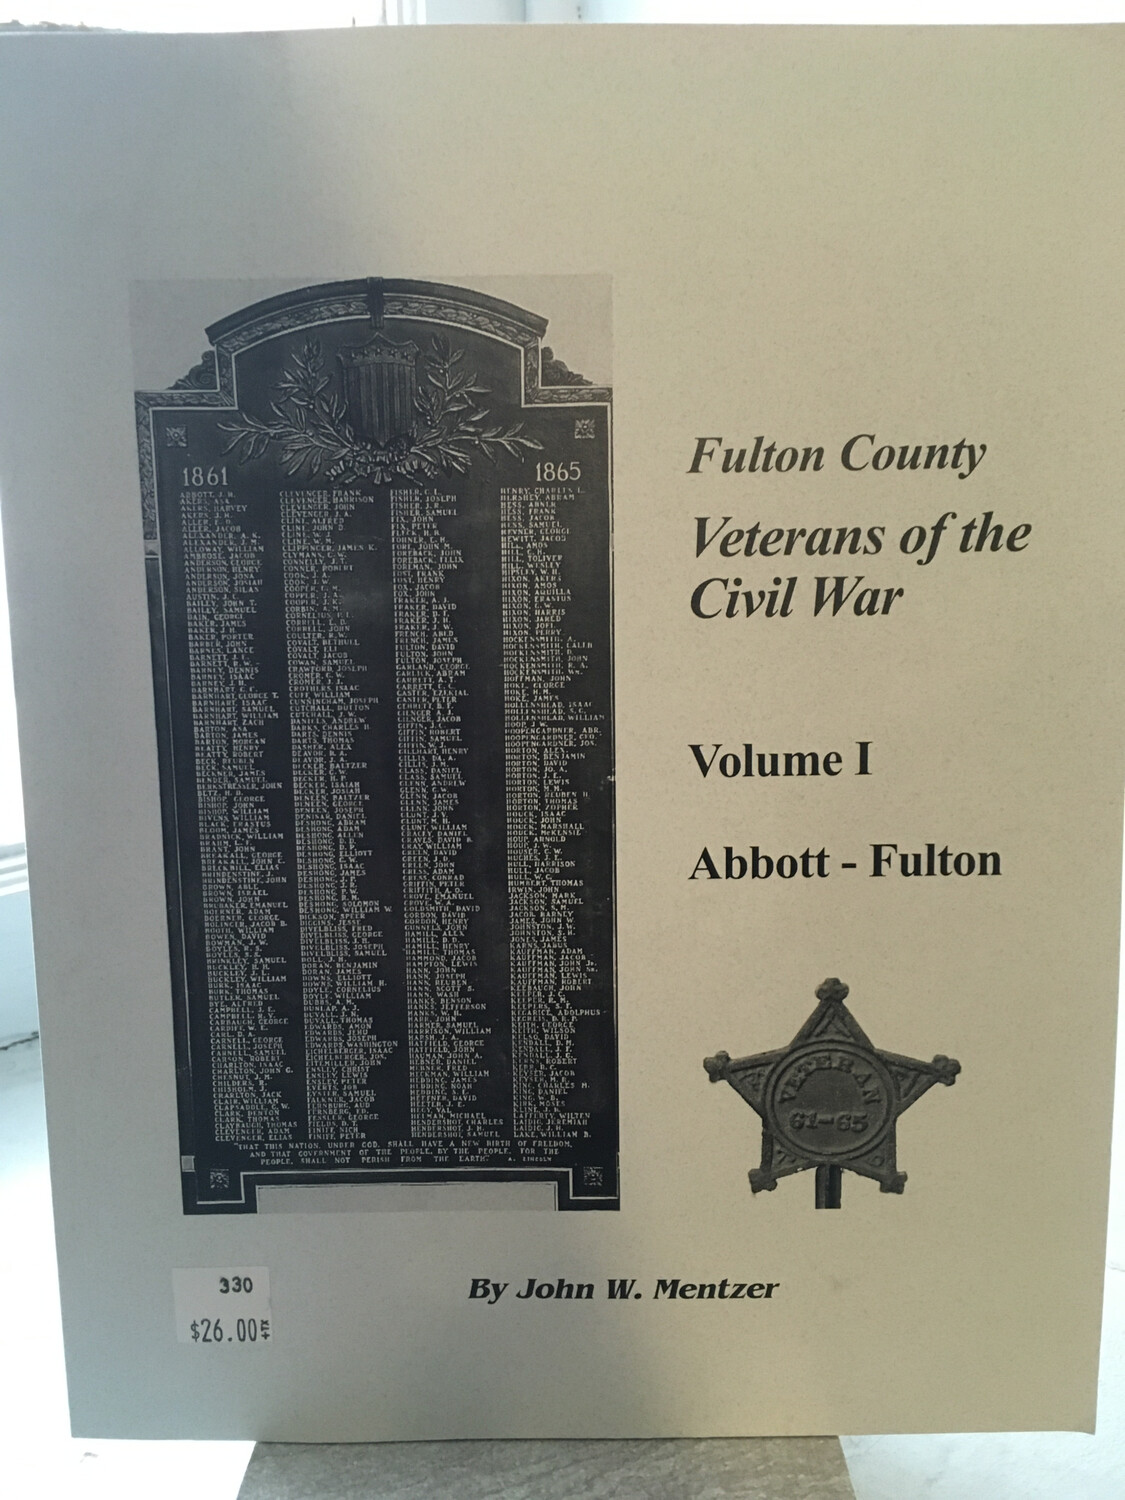 Fulton County: Veterans of the Civil War